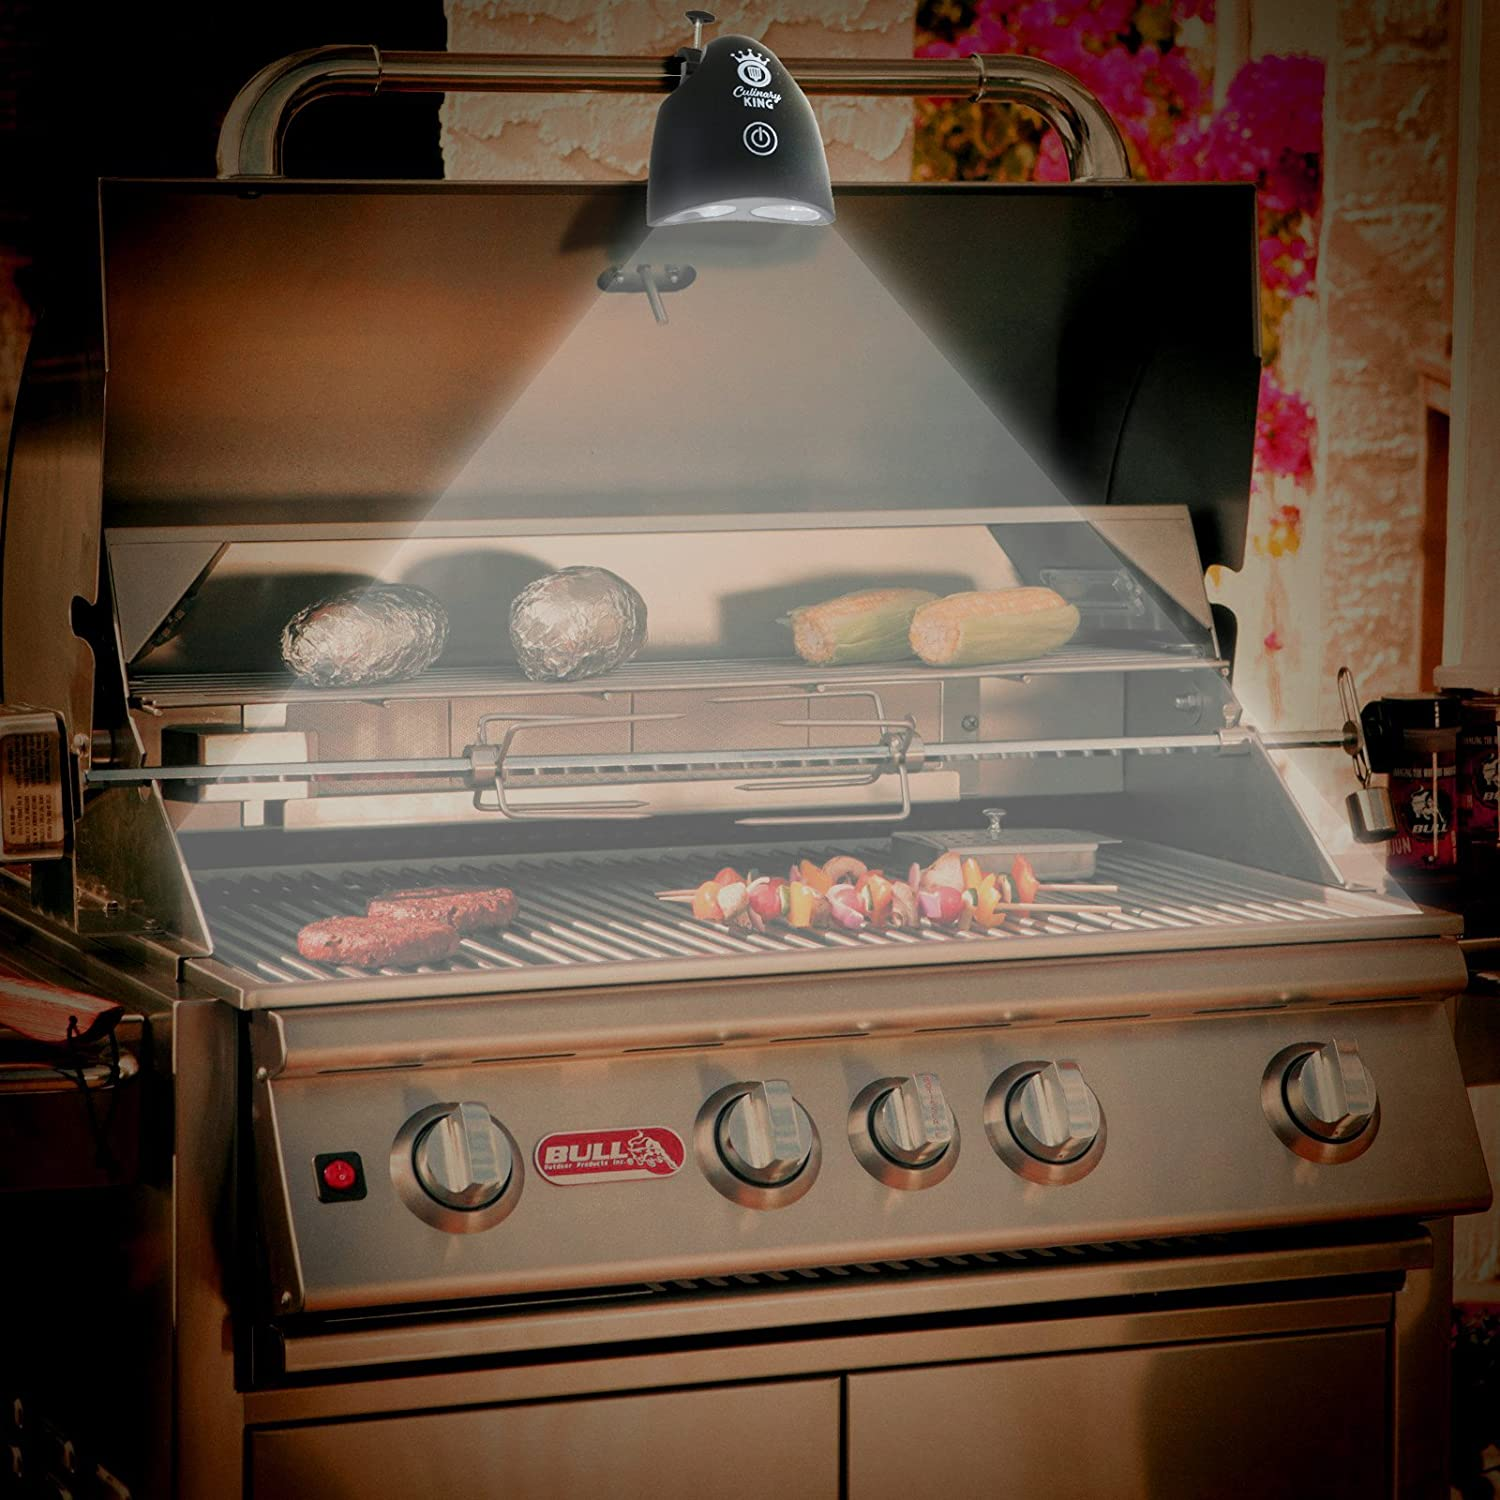 Culinary King LED Barbecue Grill Light 50,000 Hour Lifespan Fully-Adjustable All-Weather Lifetime Guarantee